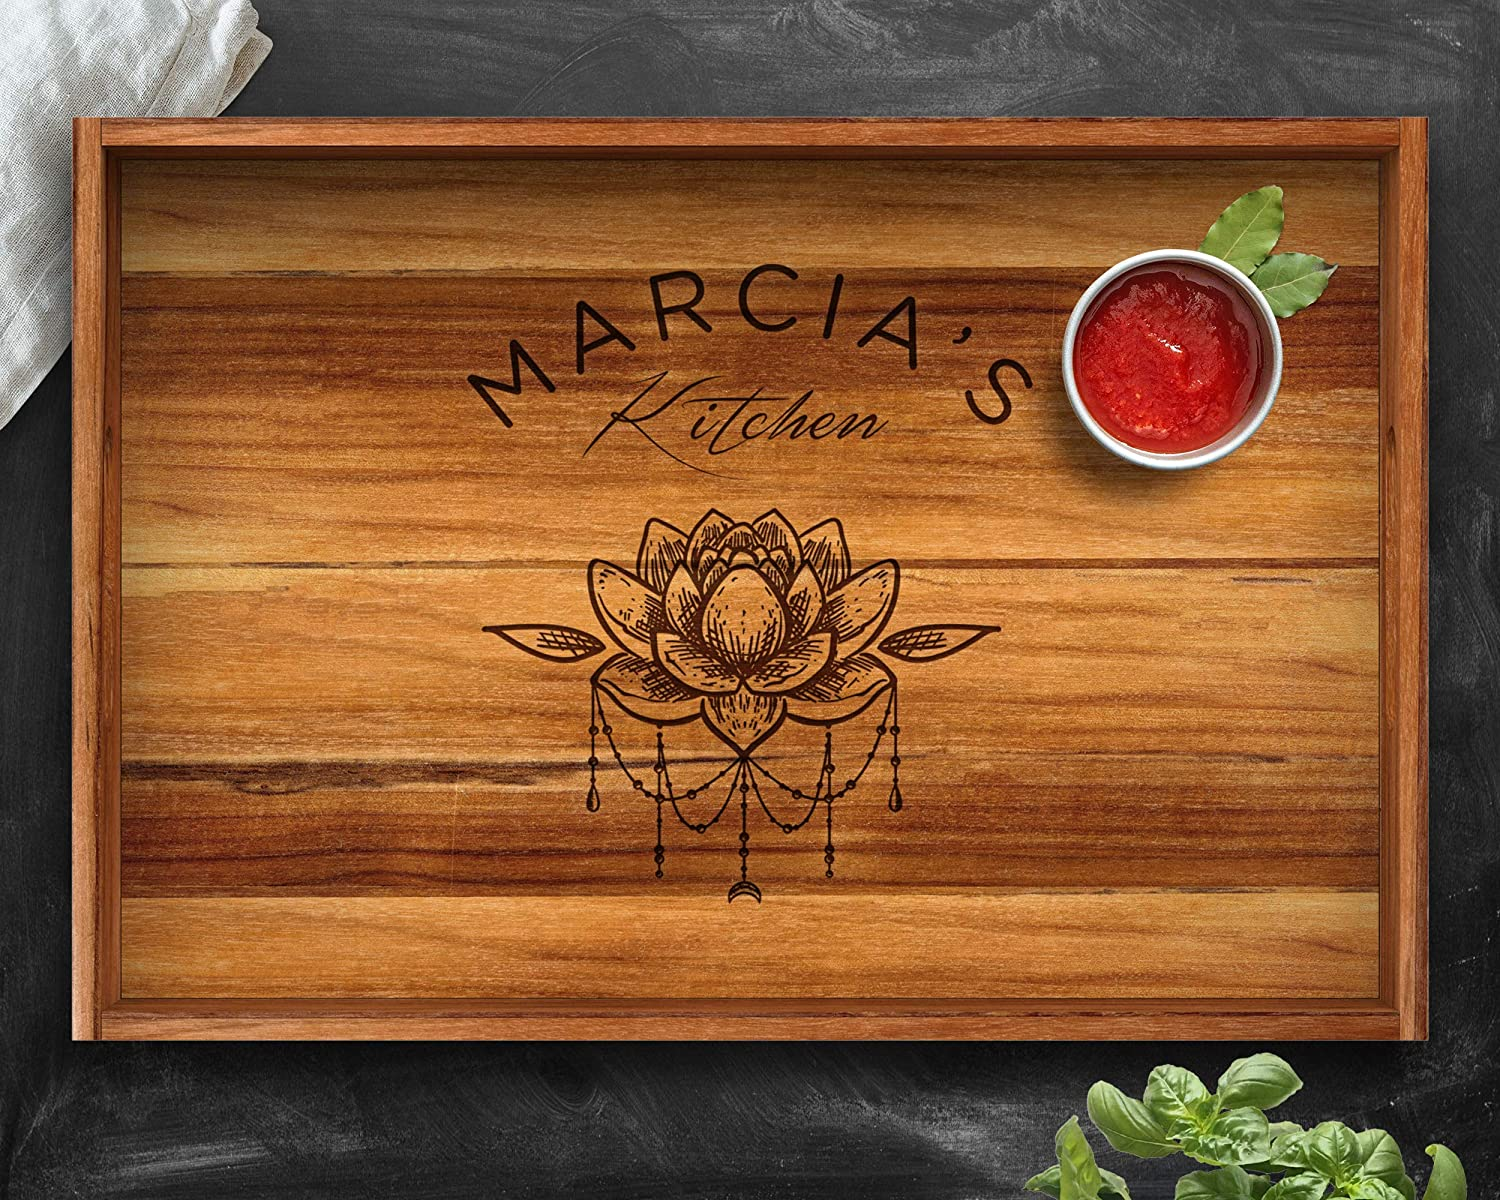 Amazon.com: Yoga Gift, Teak, Tray, Lotus Flower, Yoga Wall ...